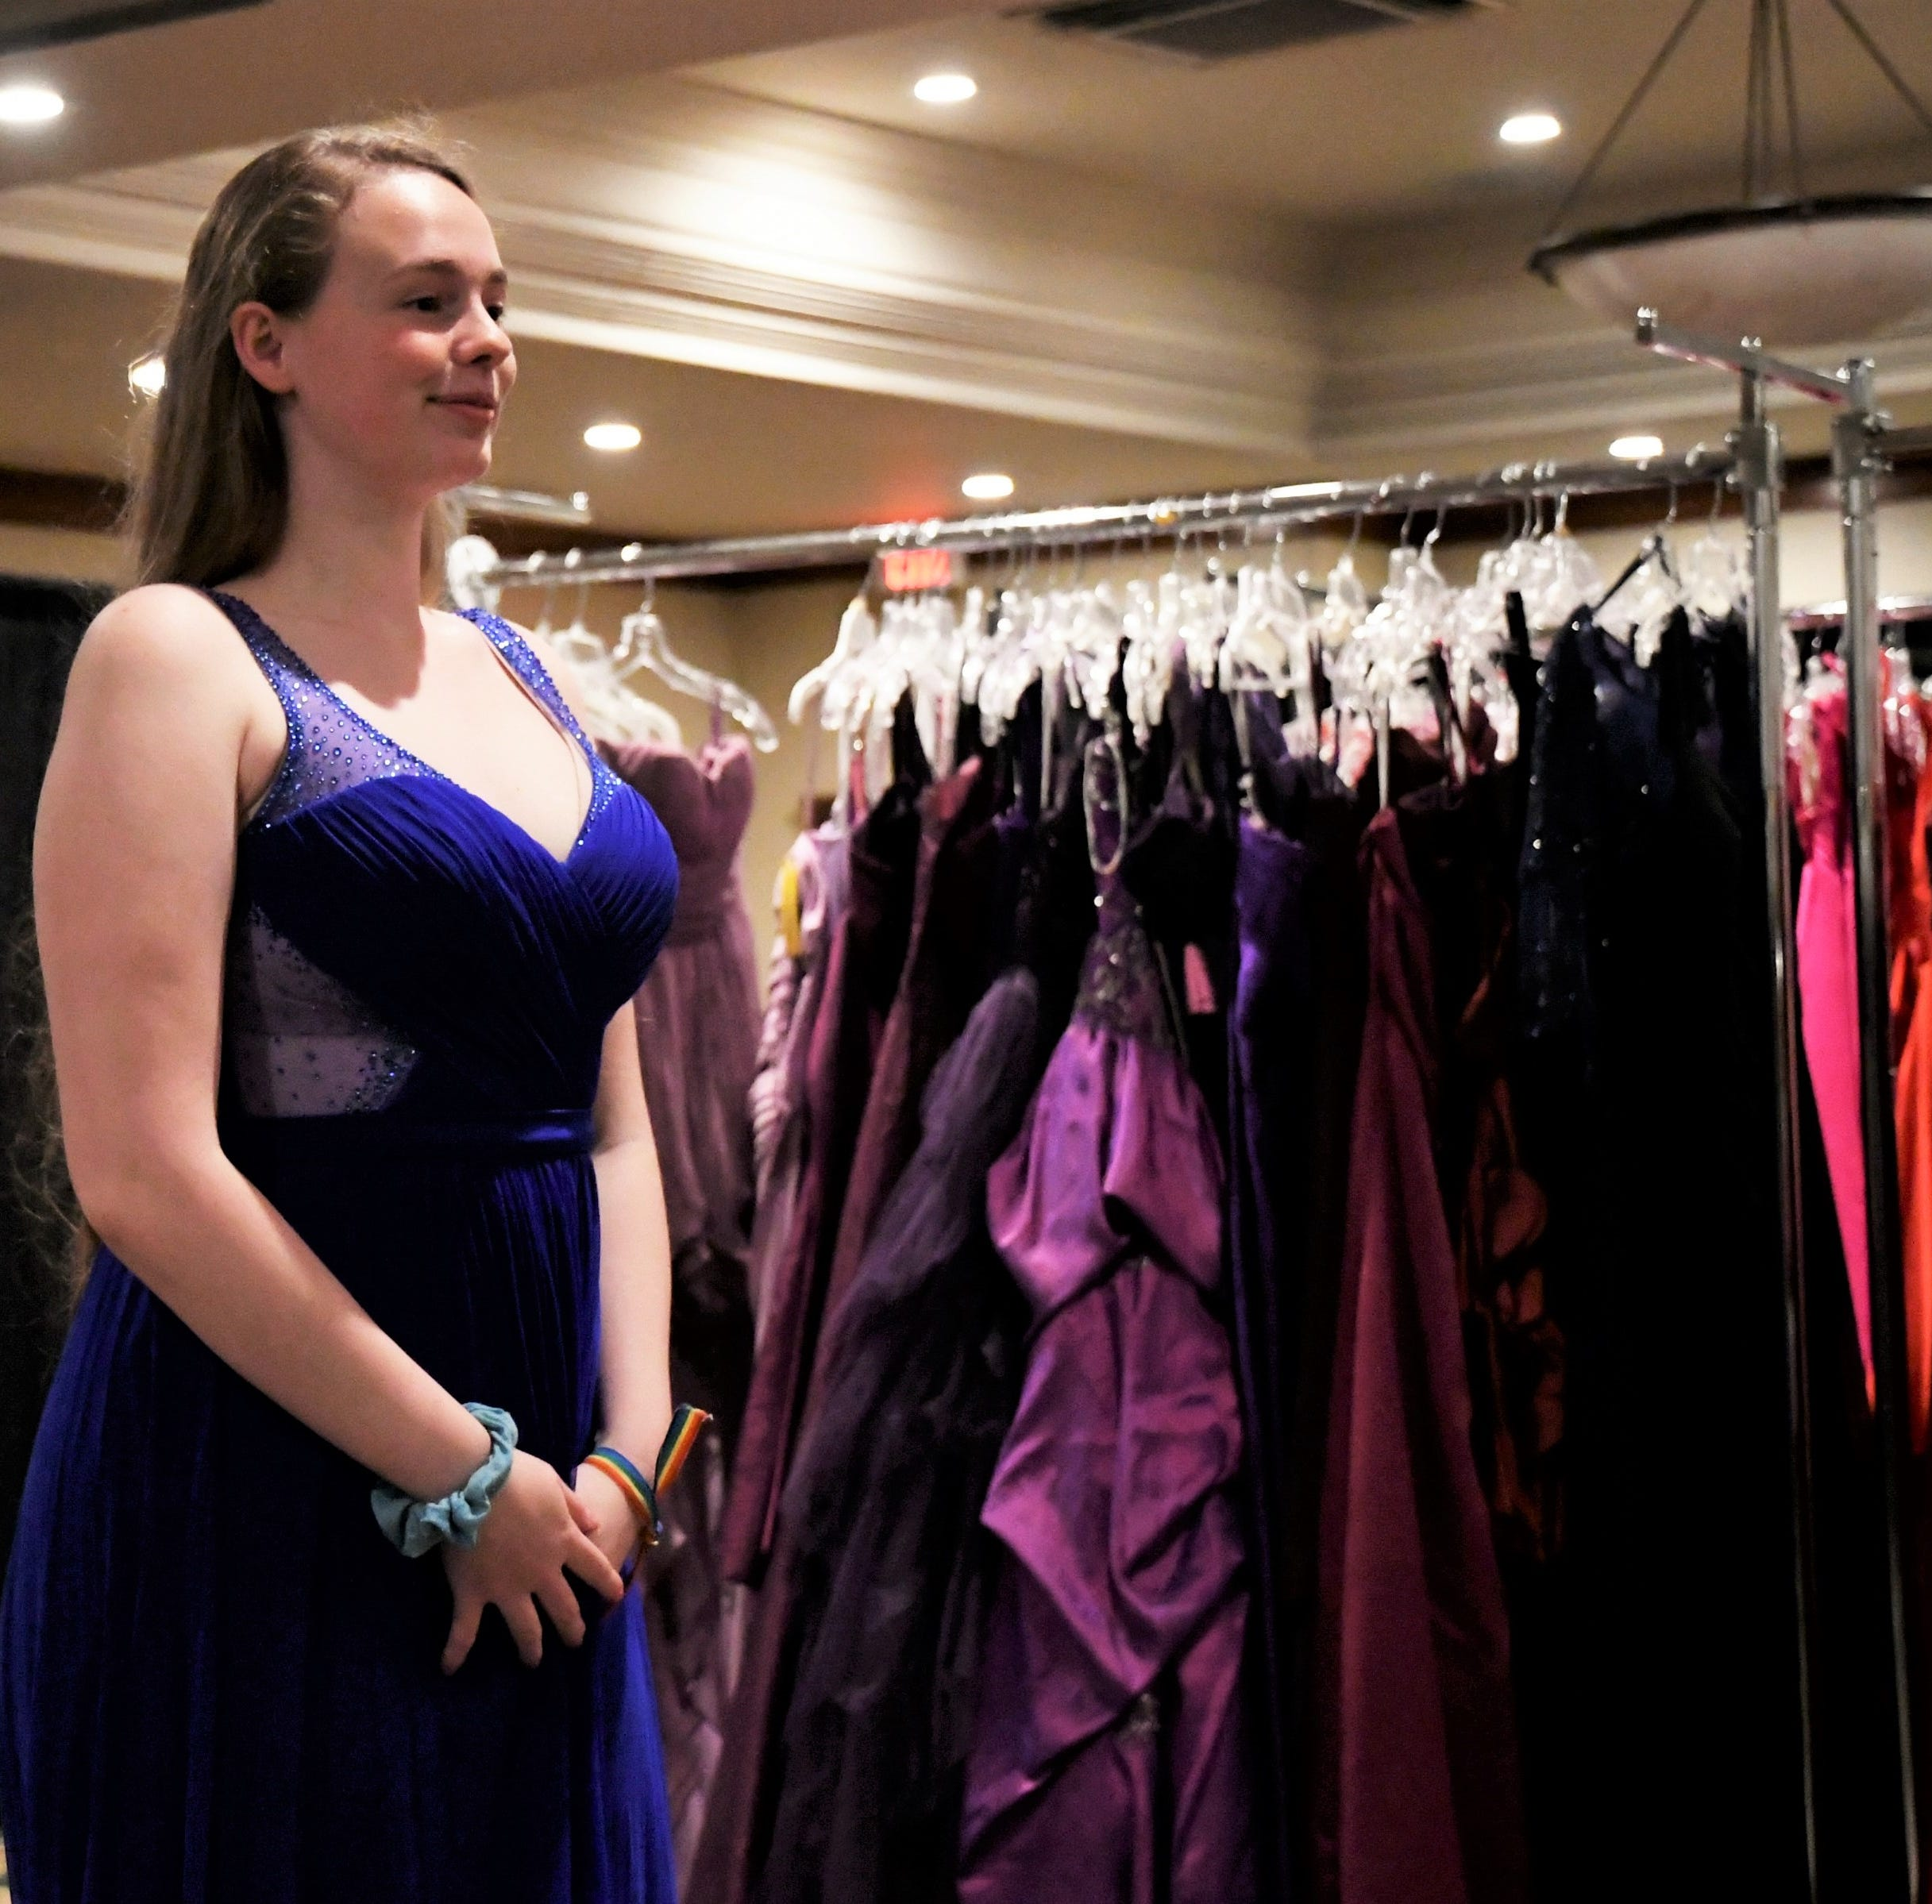 Enchanted Evening provides more than prom dresses to Tulare County girls